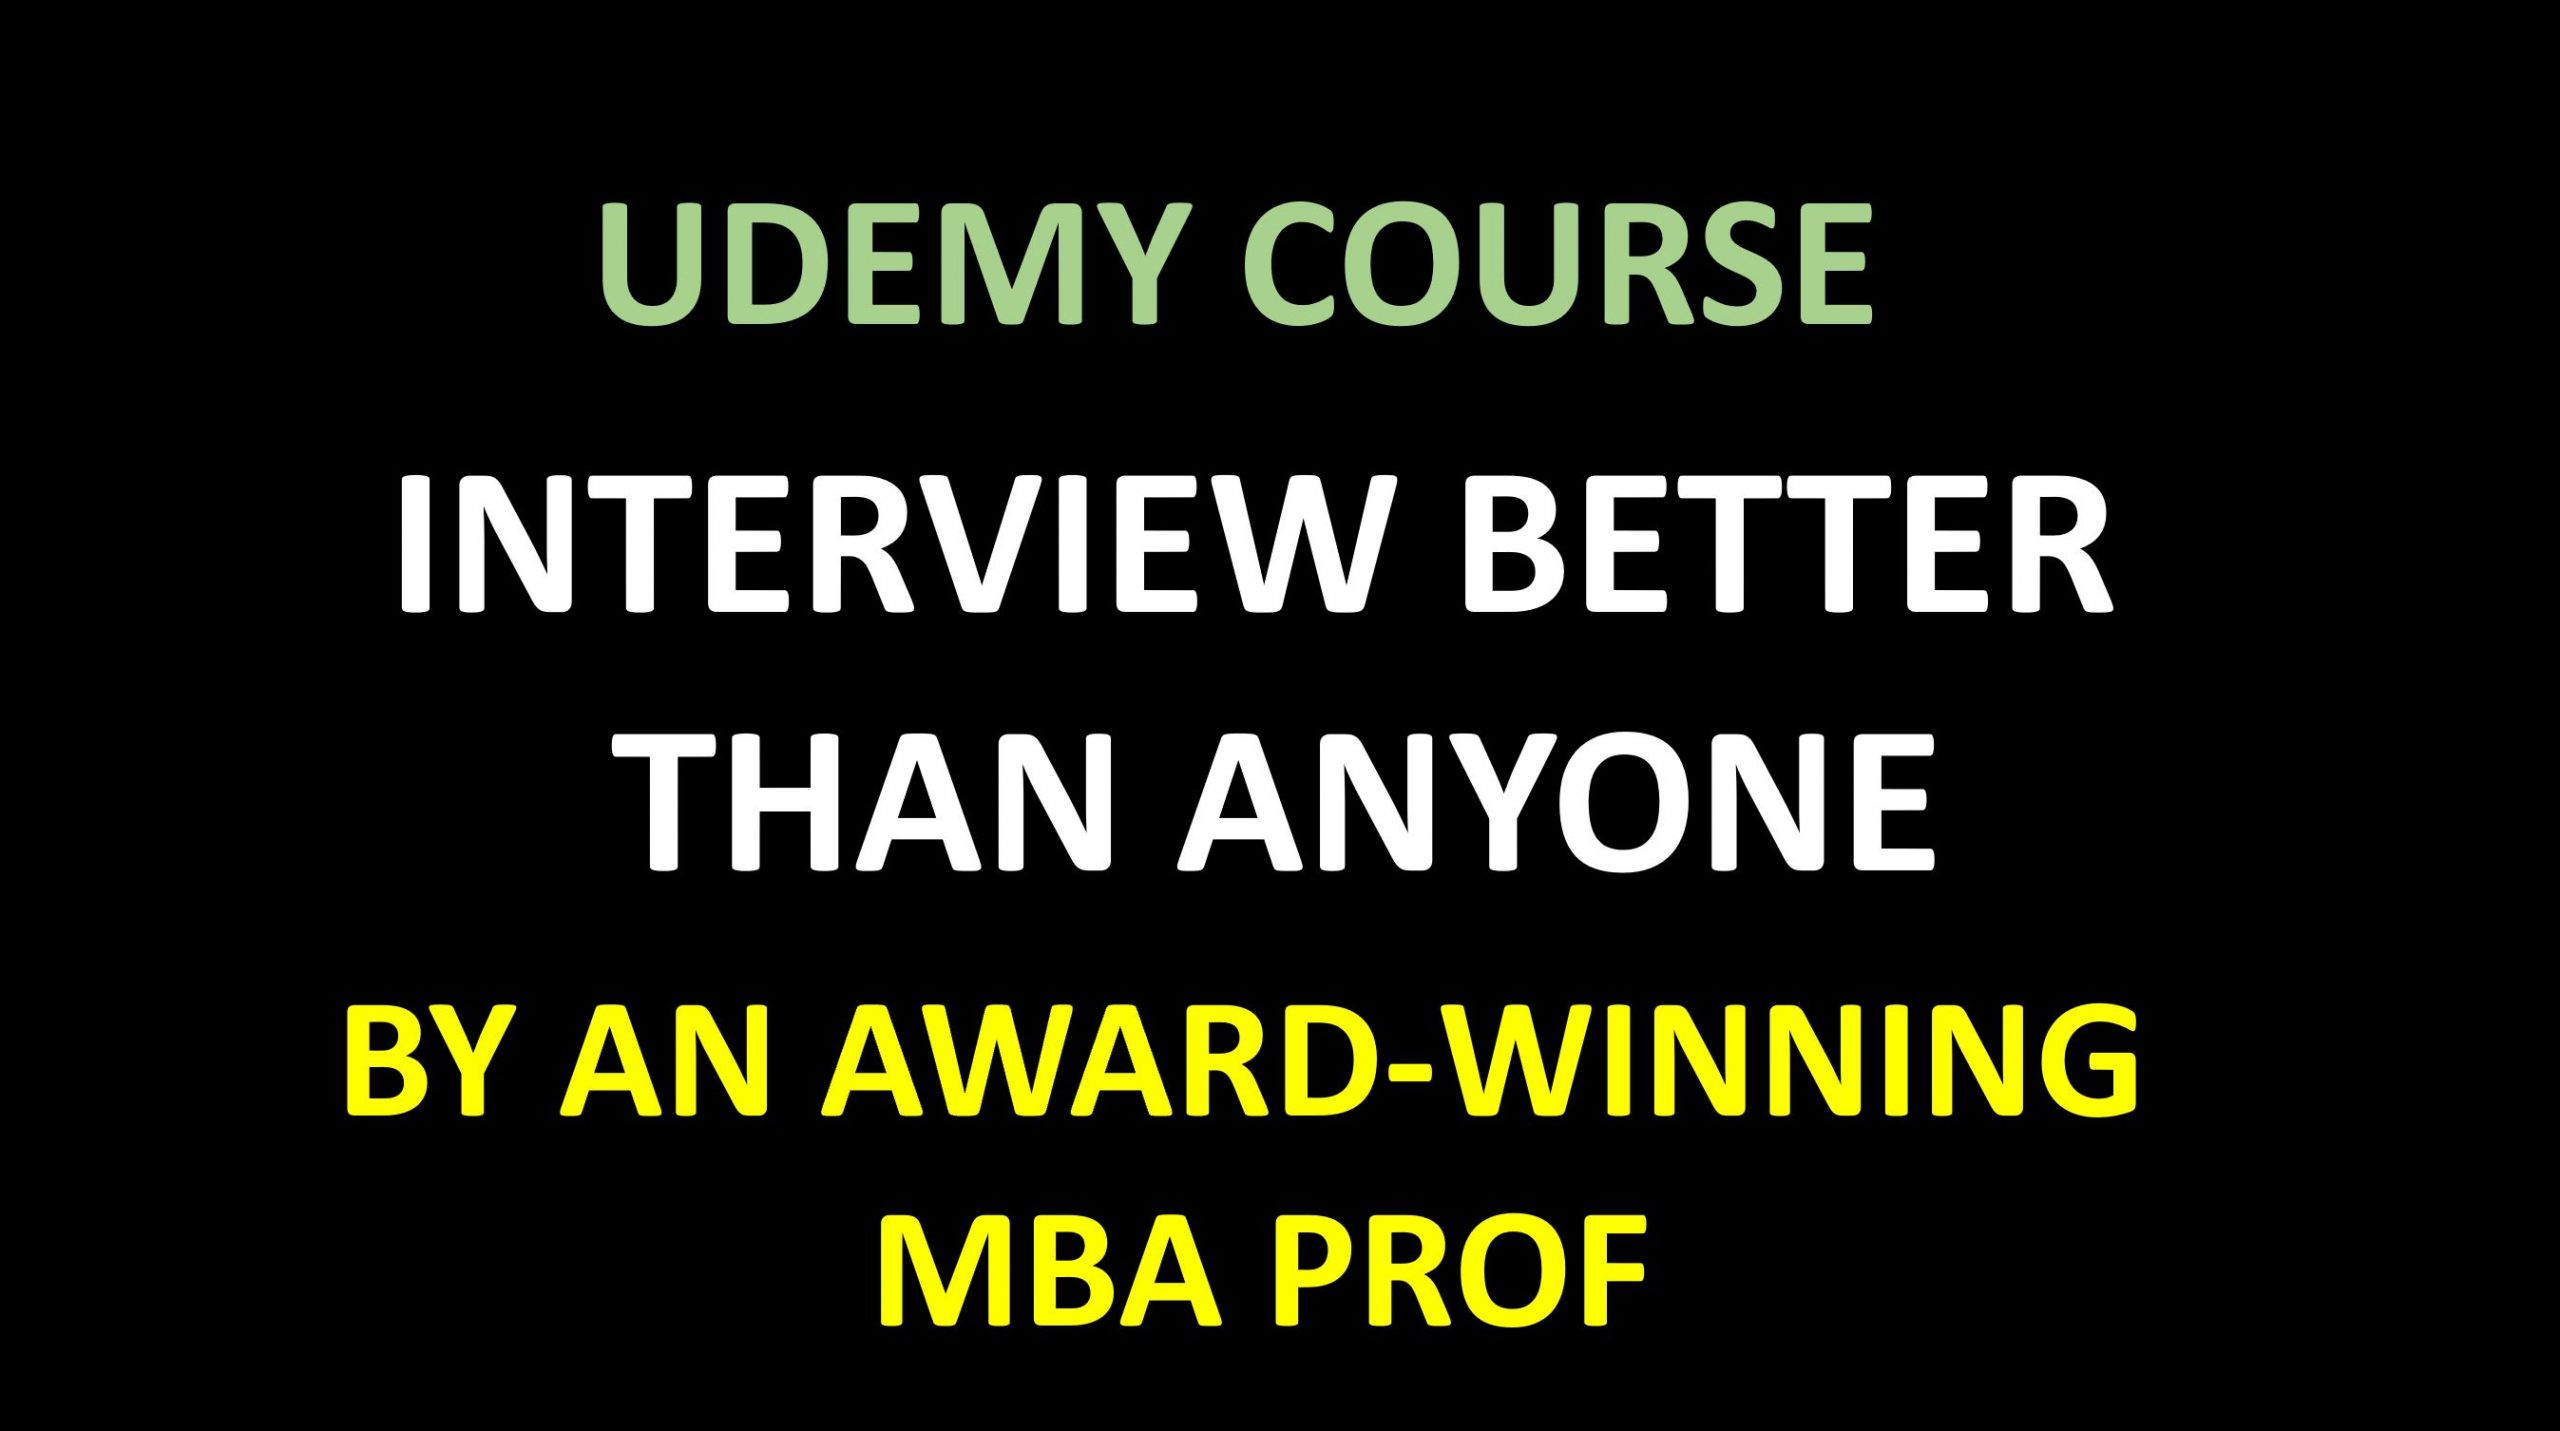 INTERVIEW BETTER THAN ANYONE - BY AN AWARD-WINNING MBA PROF